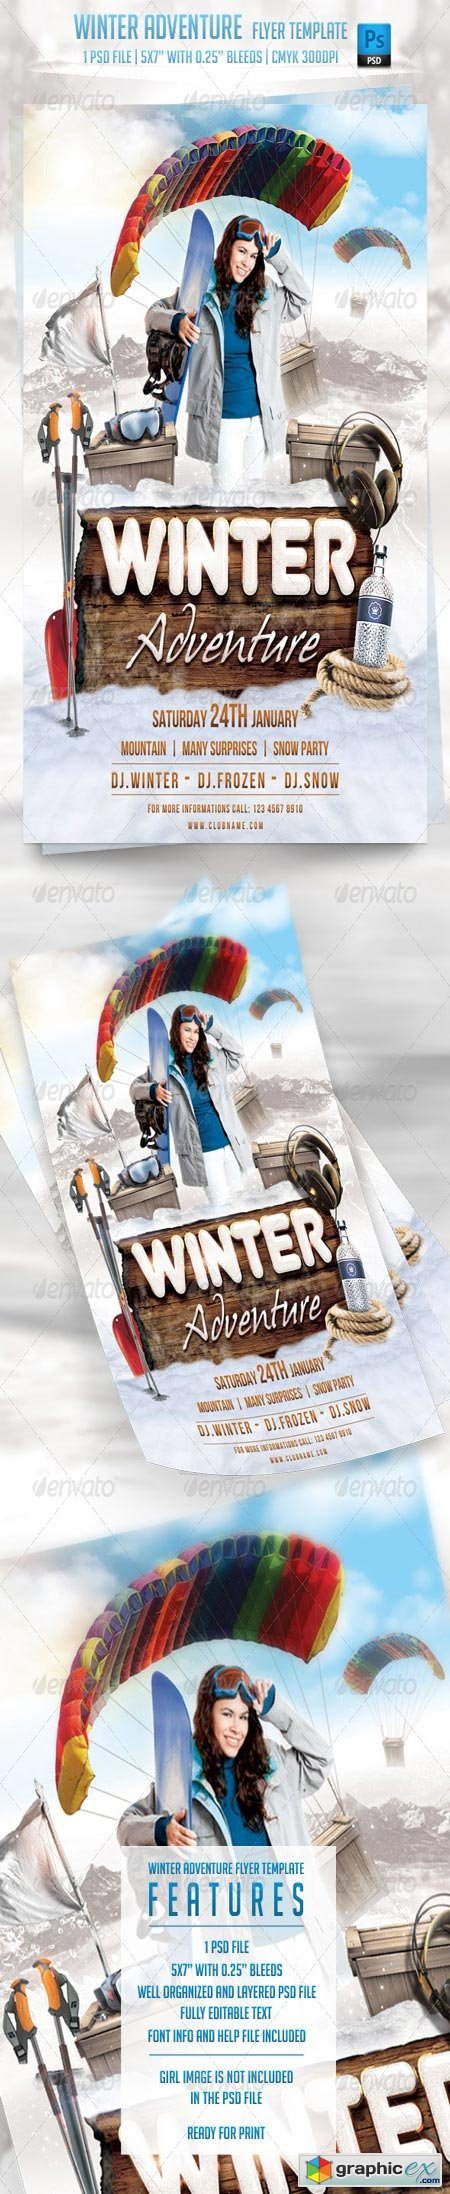 Winter Adventure Flyer Template 6346697